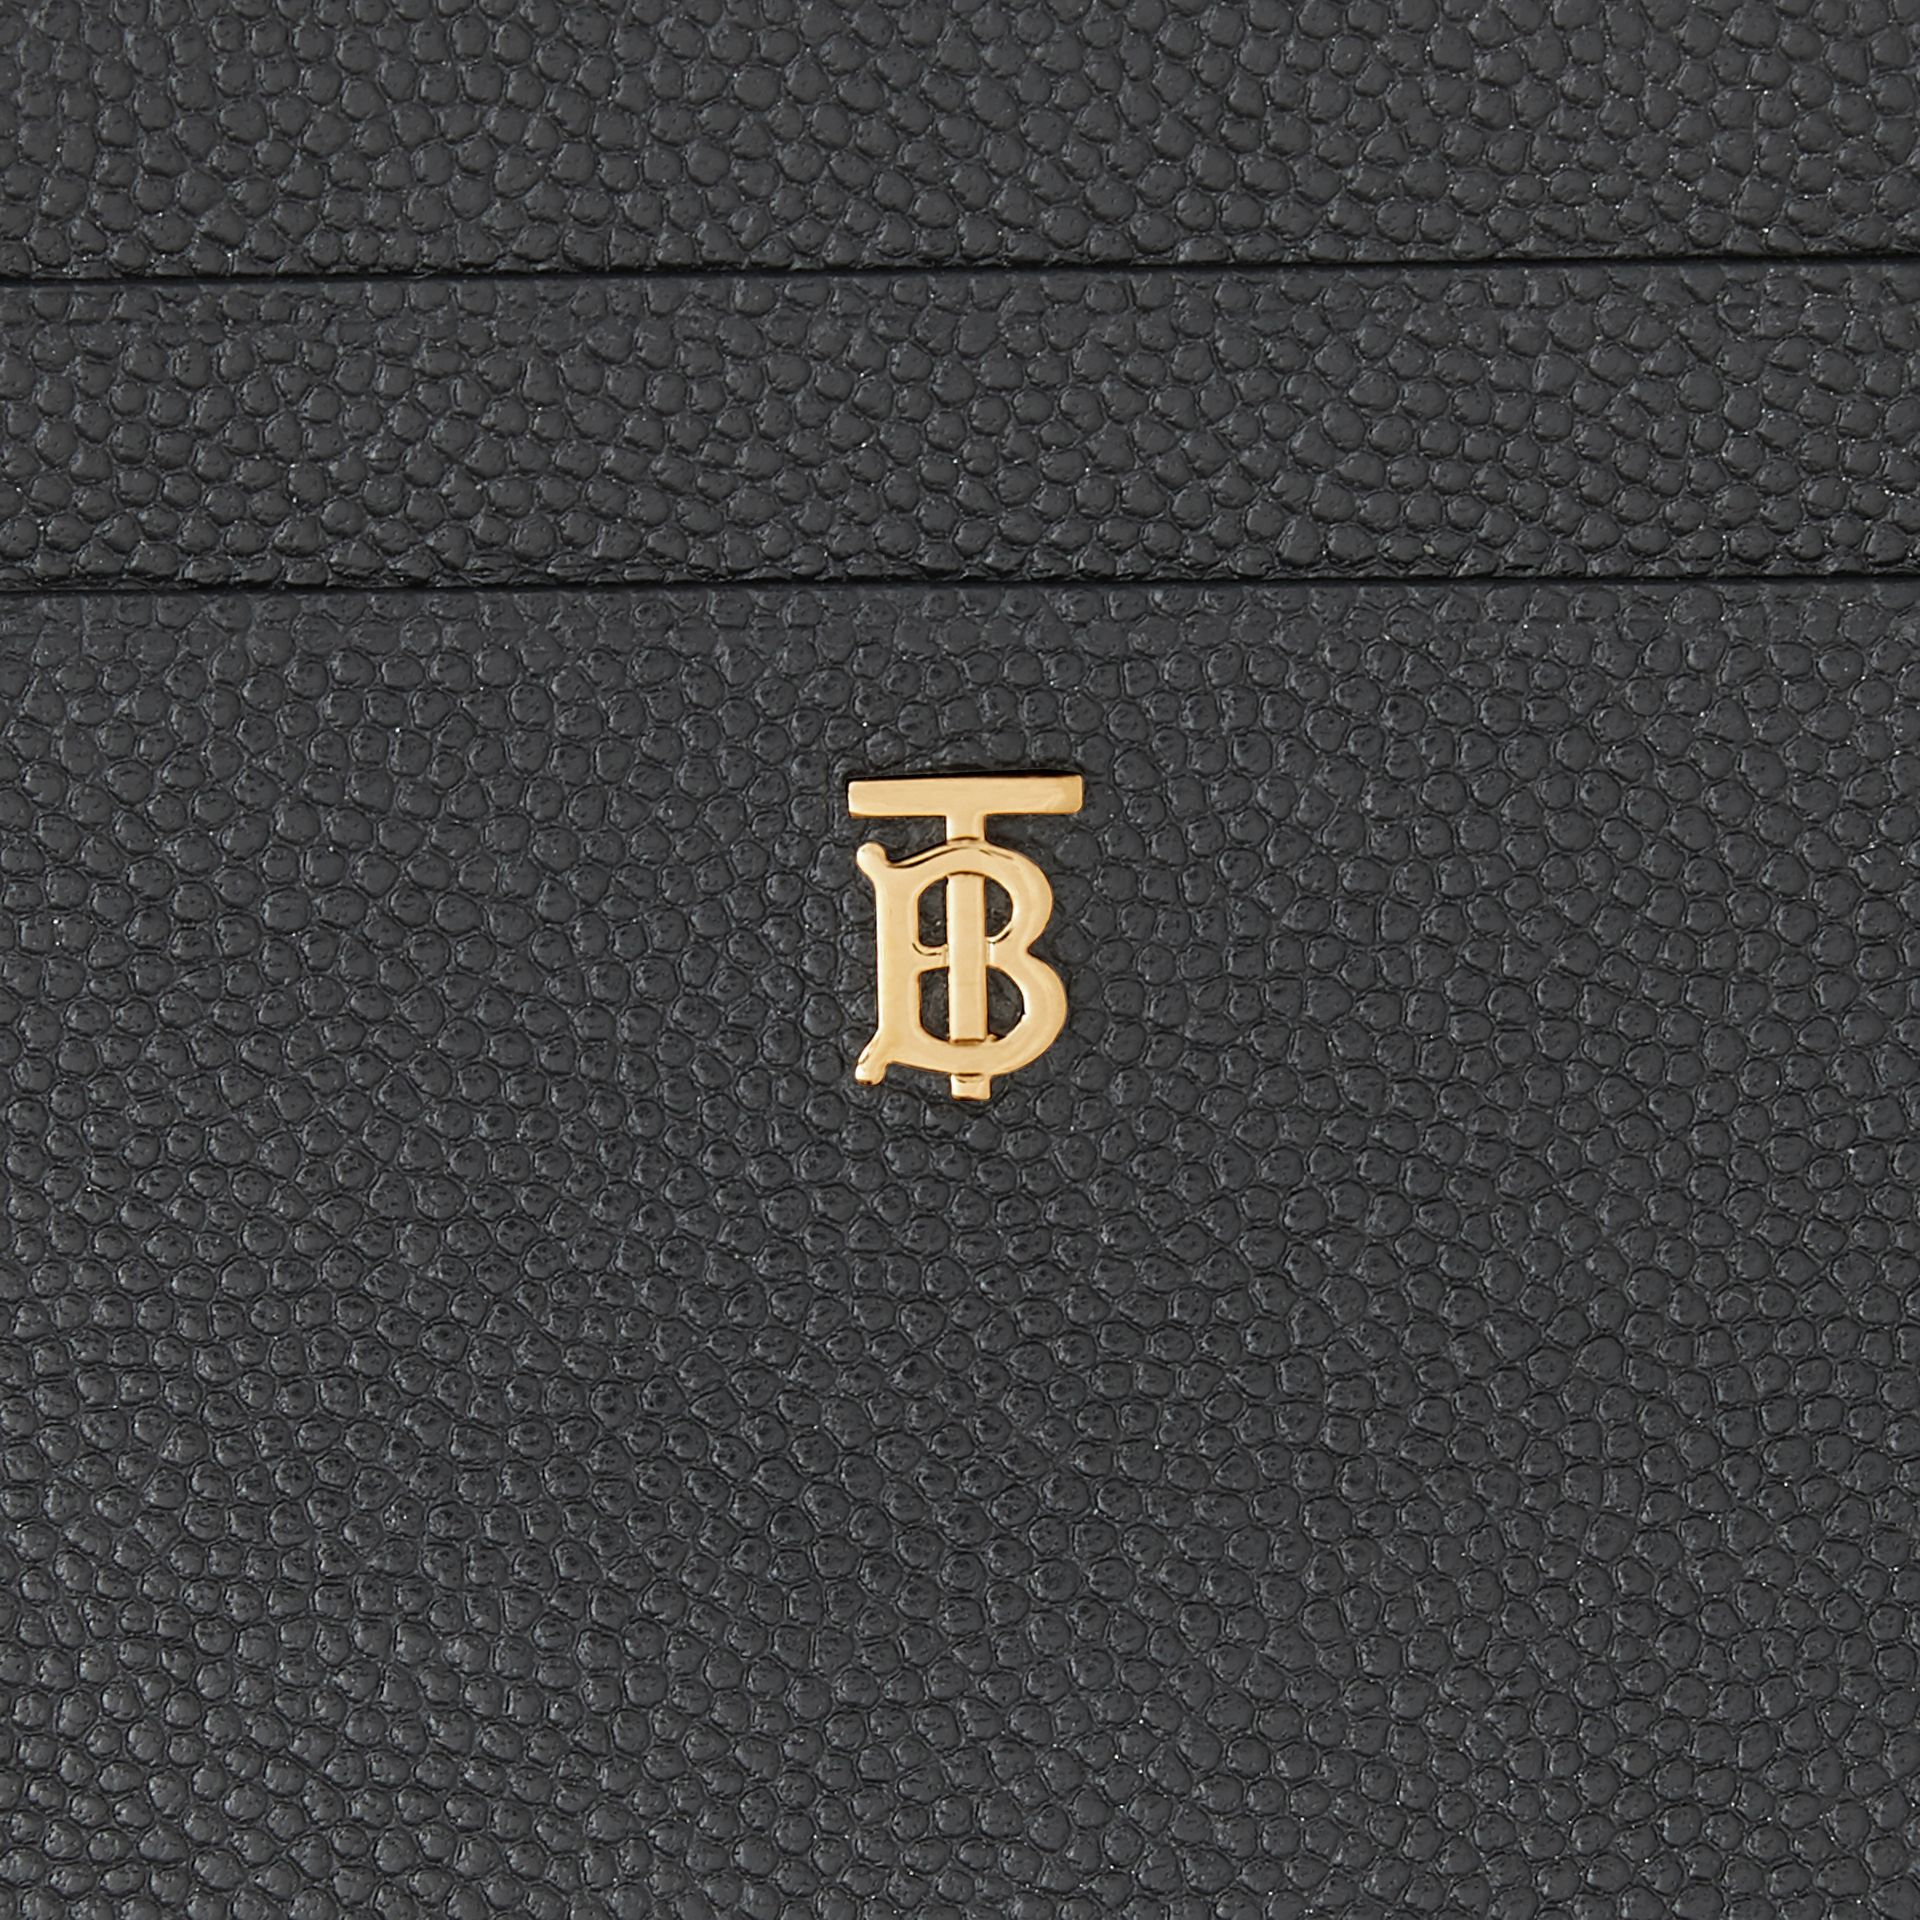 Monogram Motif Grainy Leather Zip Card Case in Black - Women | Burberry - gallery image 1